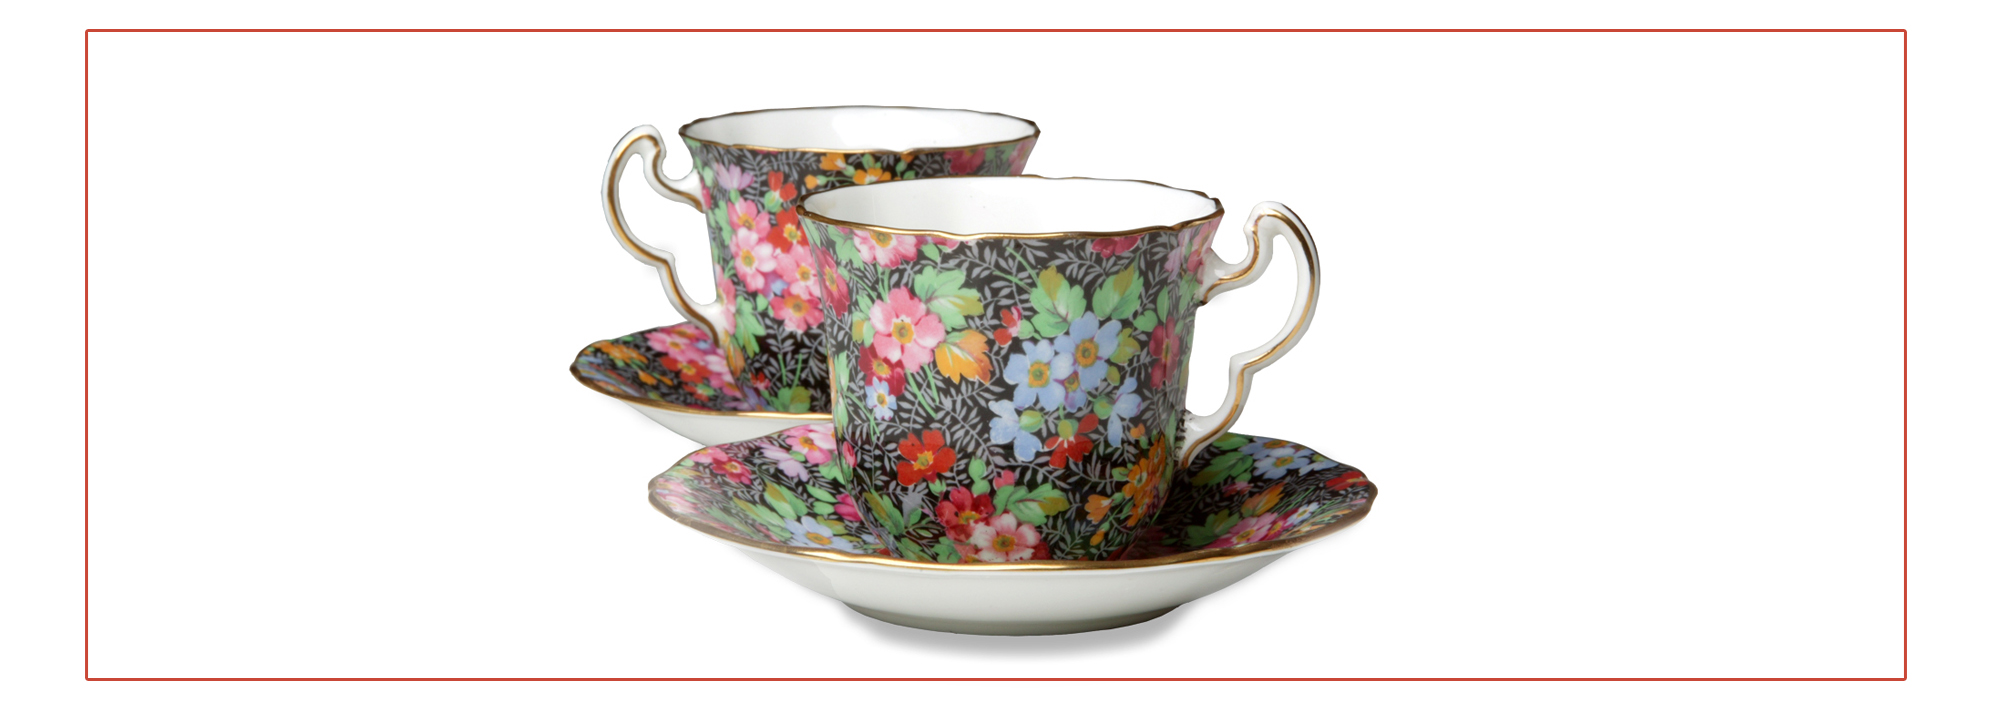 Floral Tea Cups-37693-Flattened copy.jpg